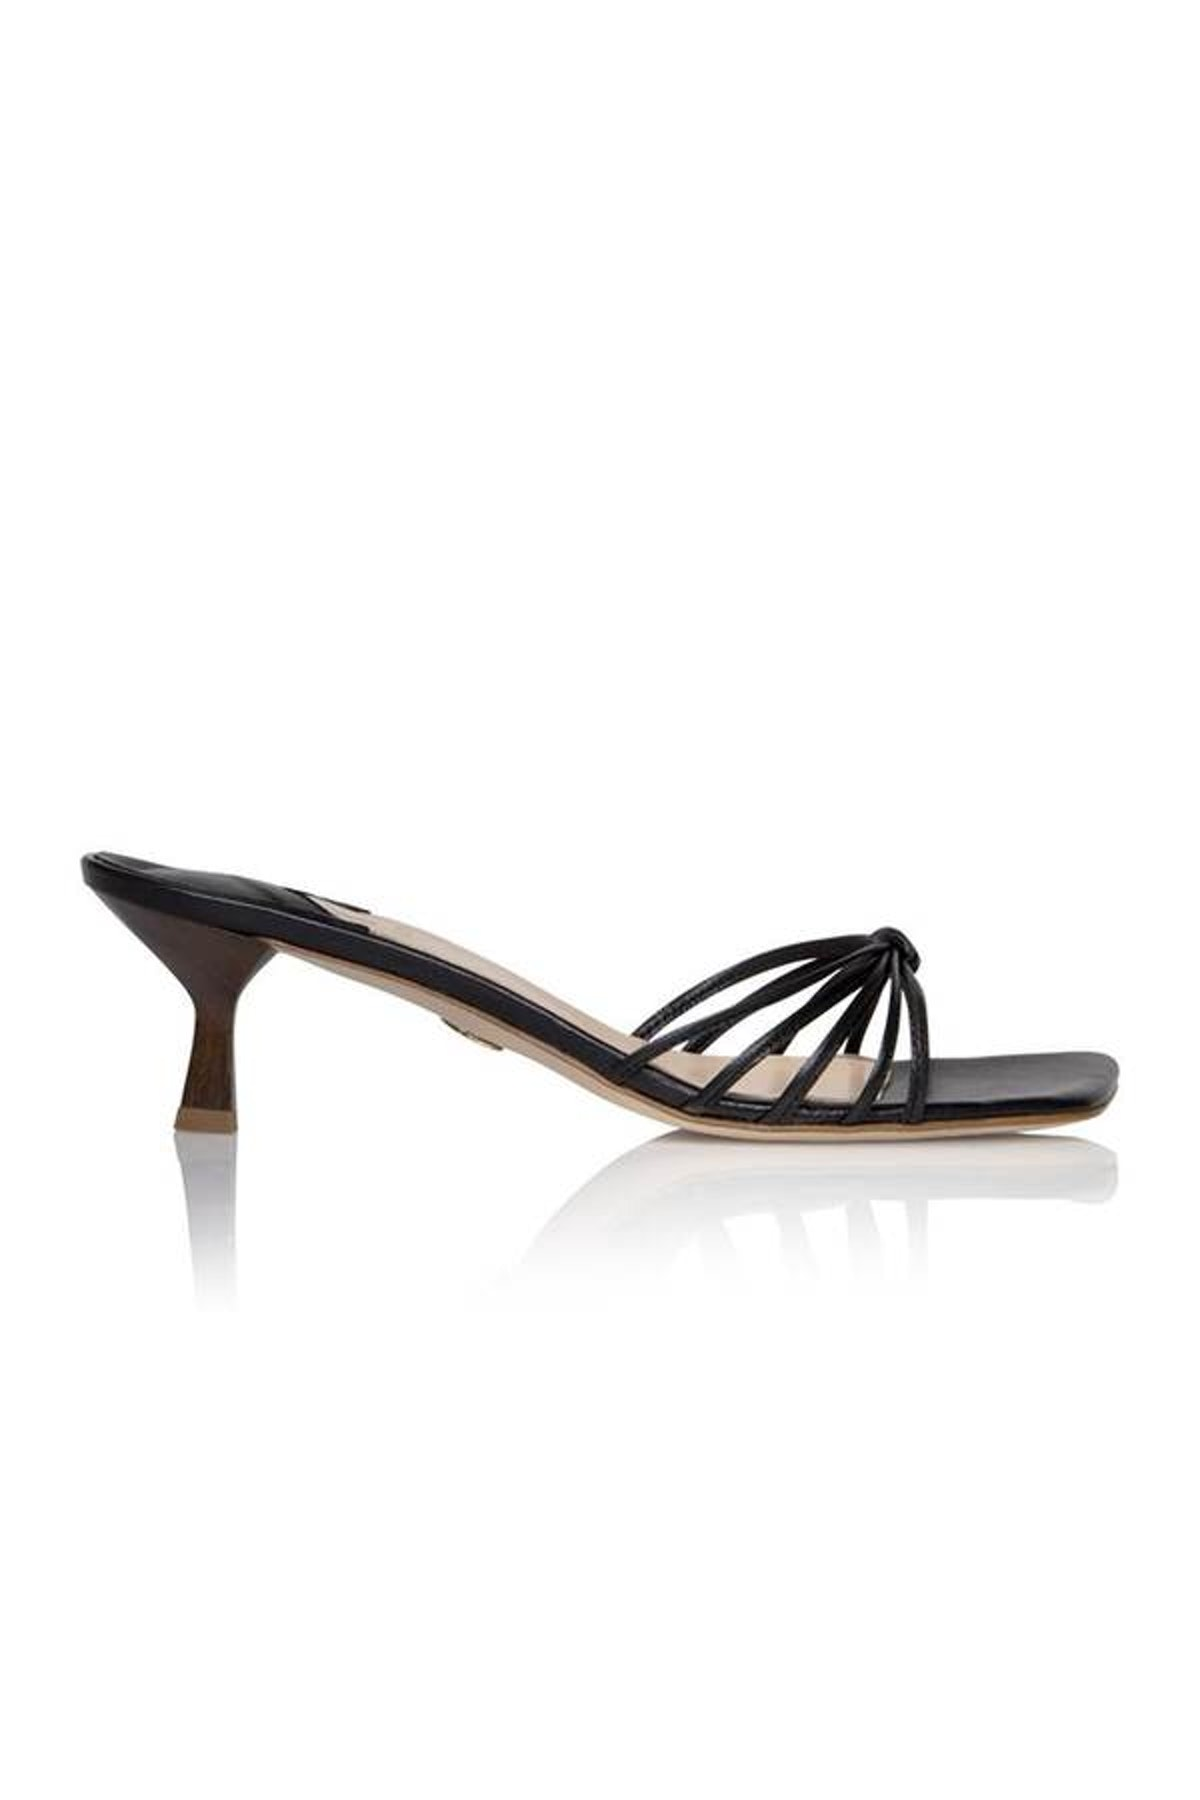 Luci Sandal in Midnight